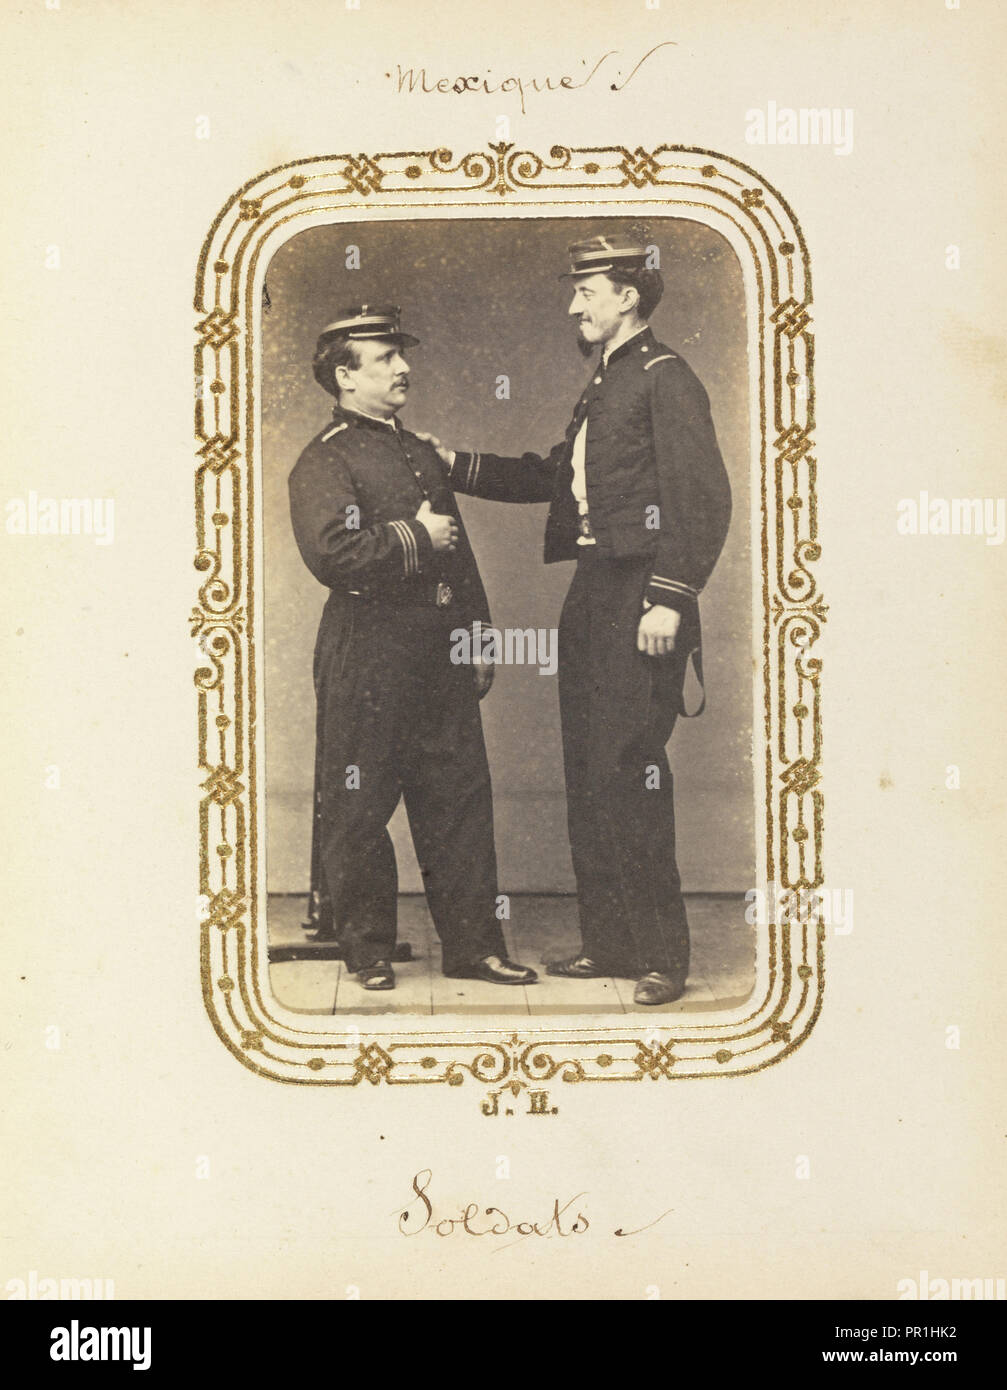 Album Of Mexican And French Cartes De Visite Between 1861 1880